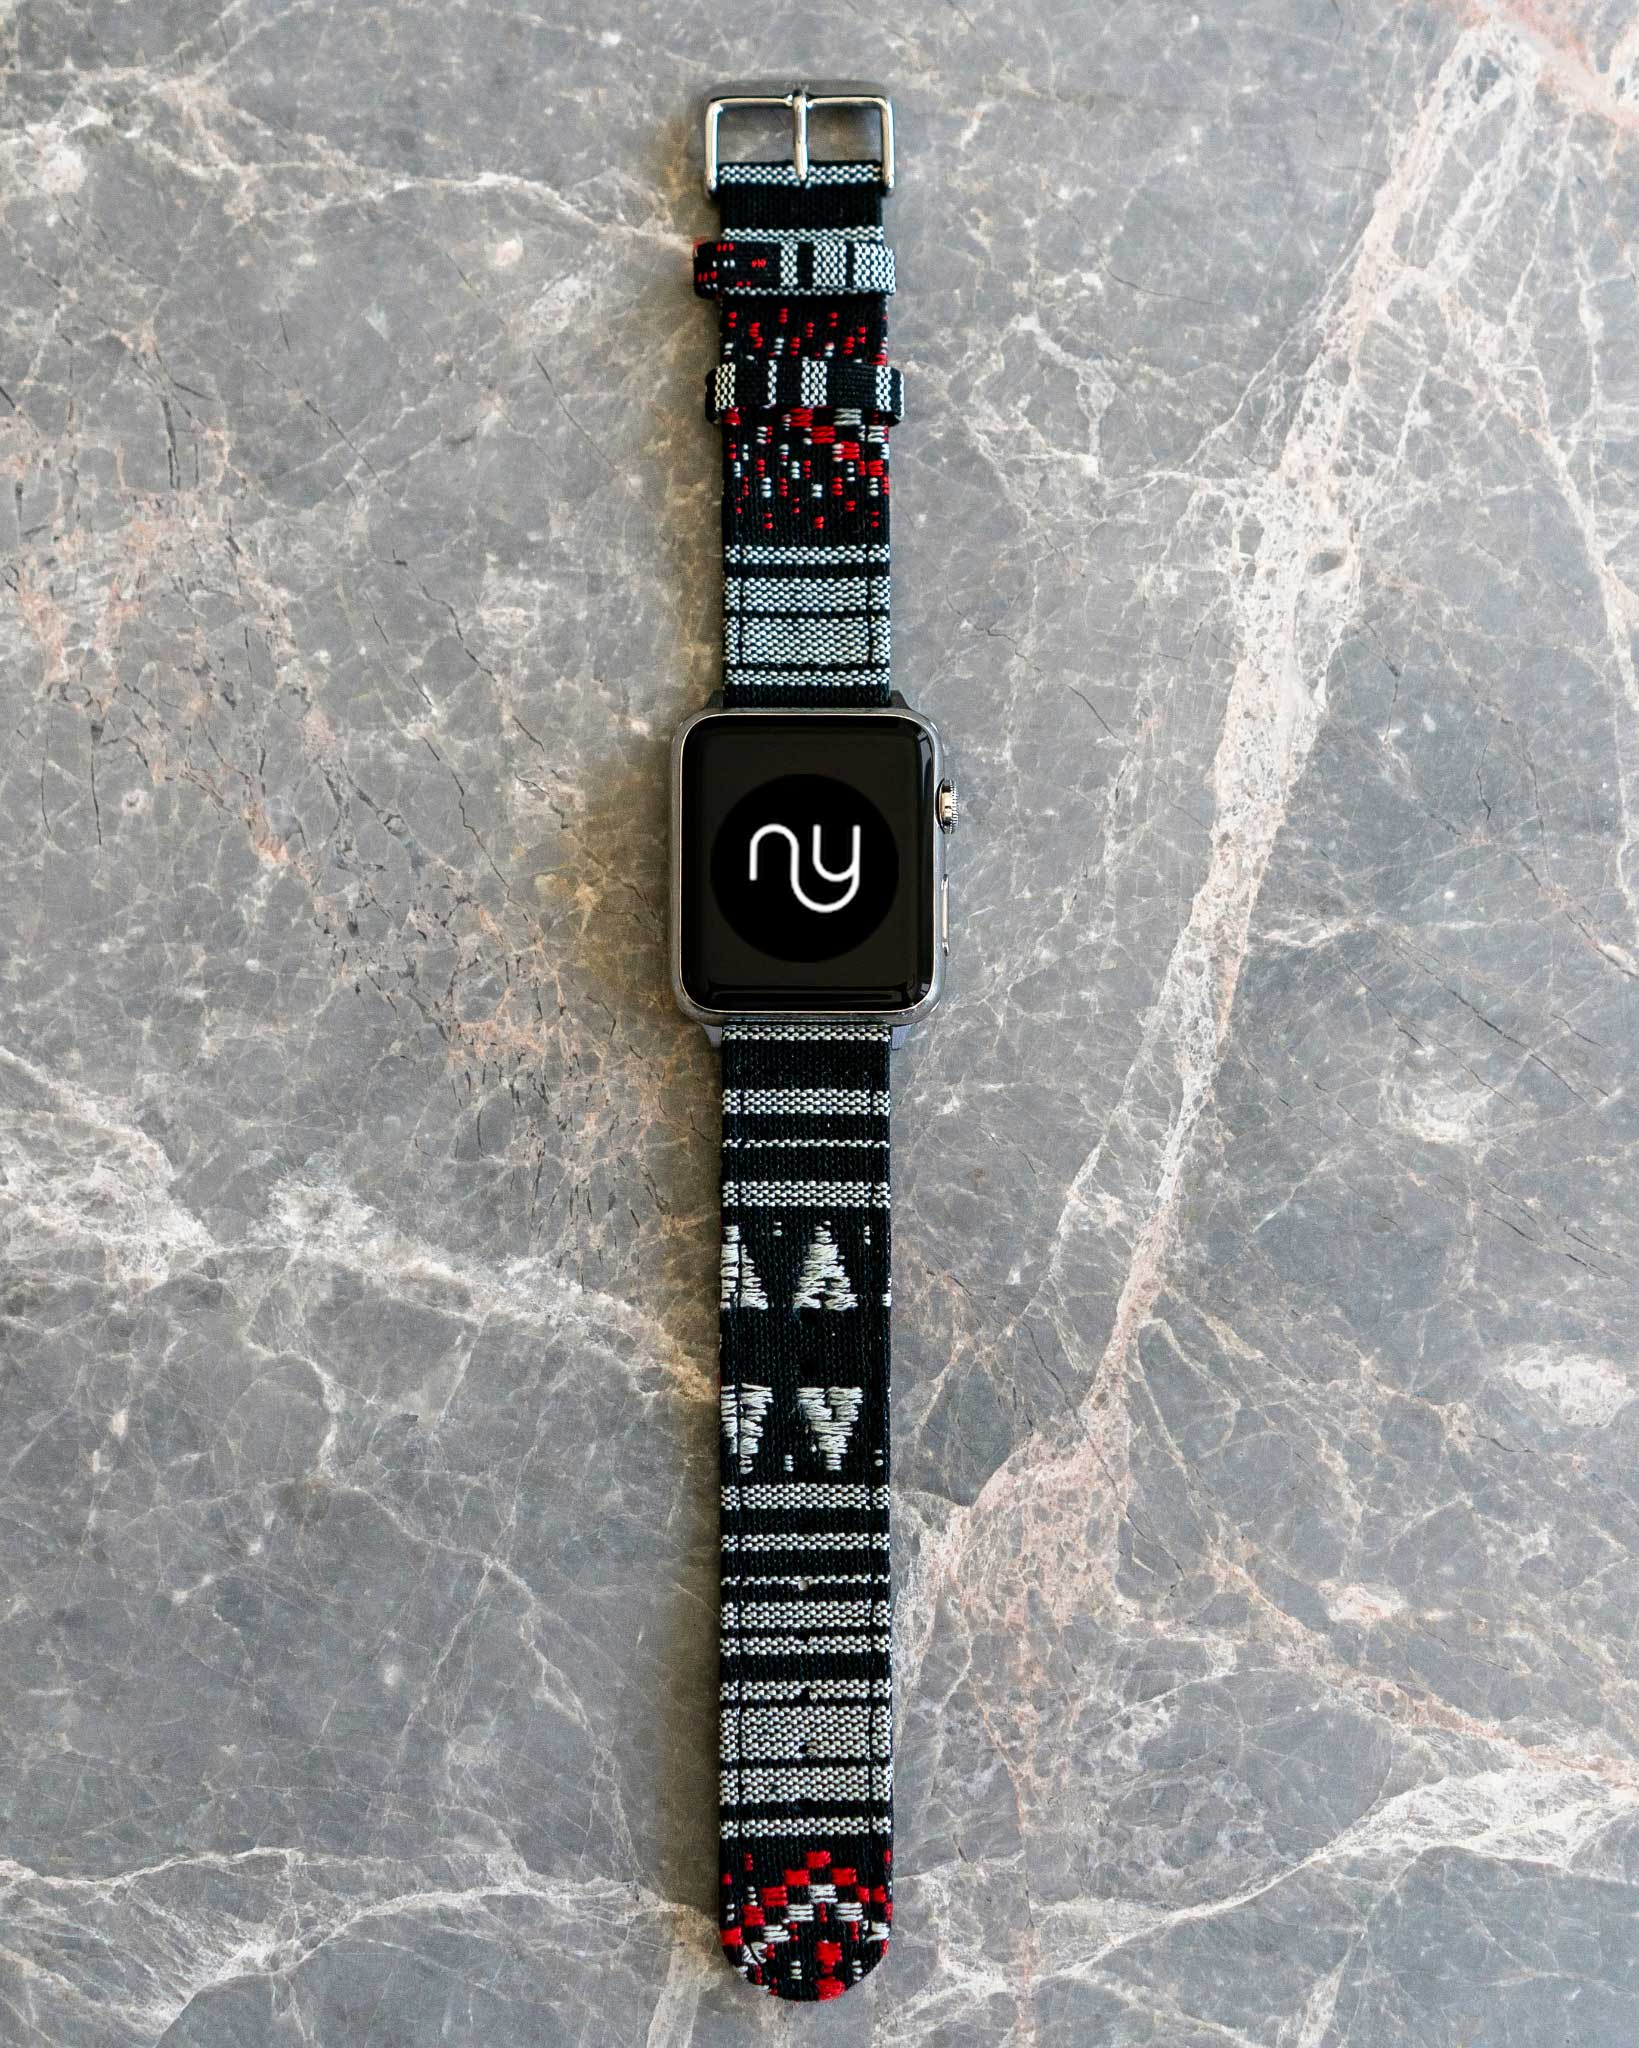 Nyloon Apple Watch Band Review